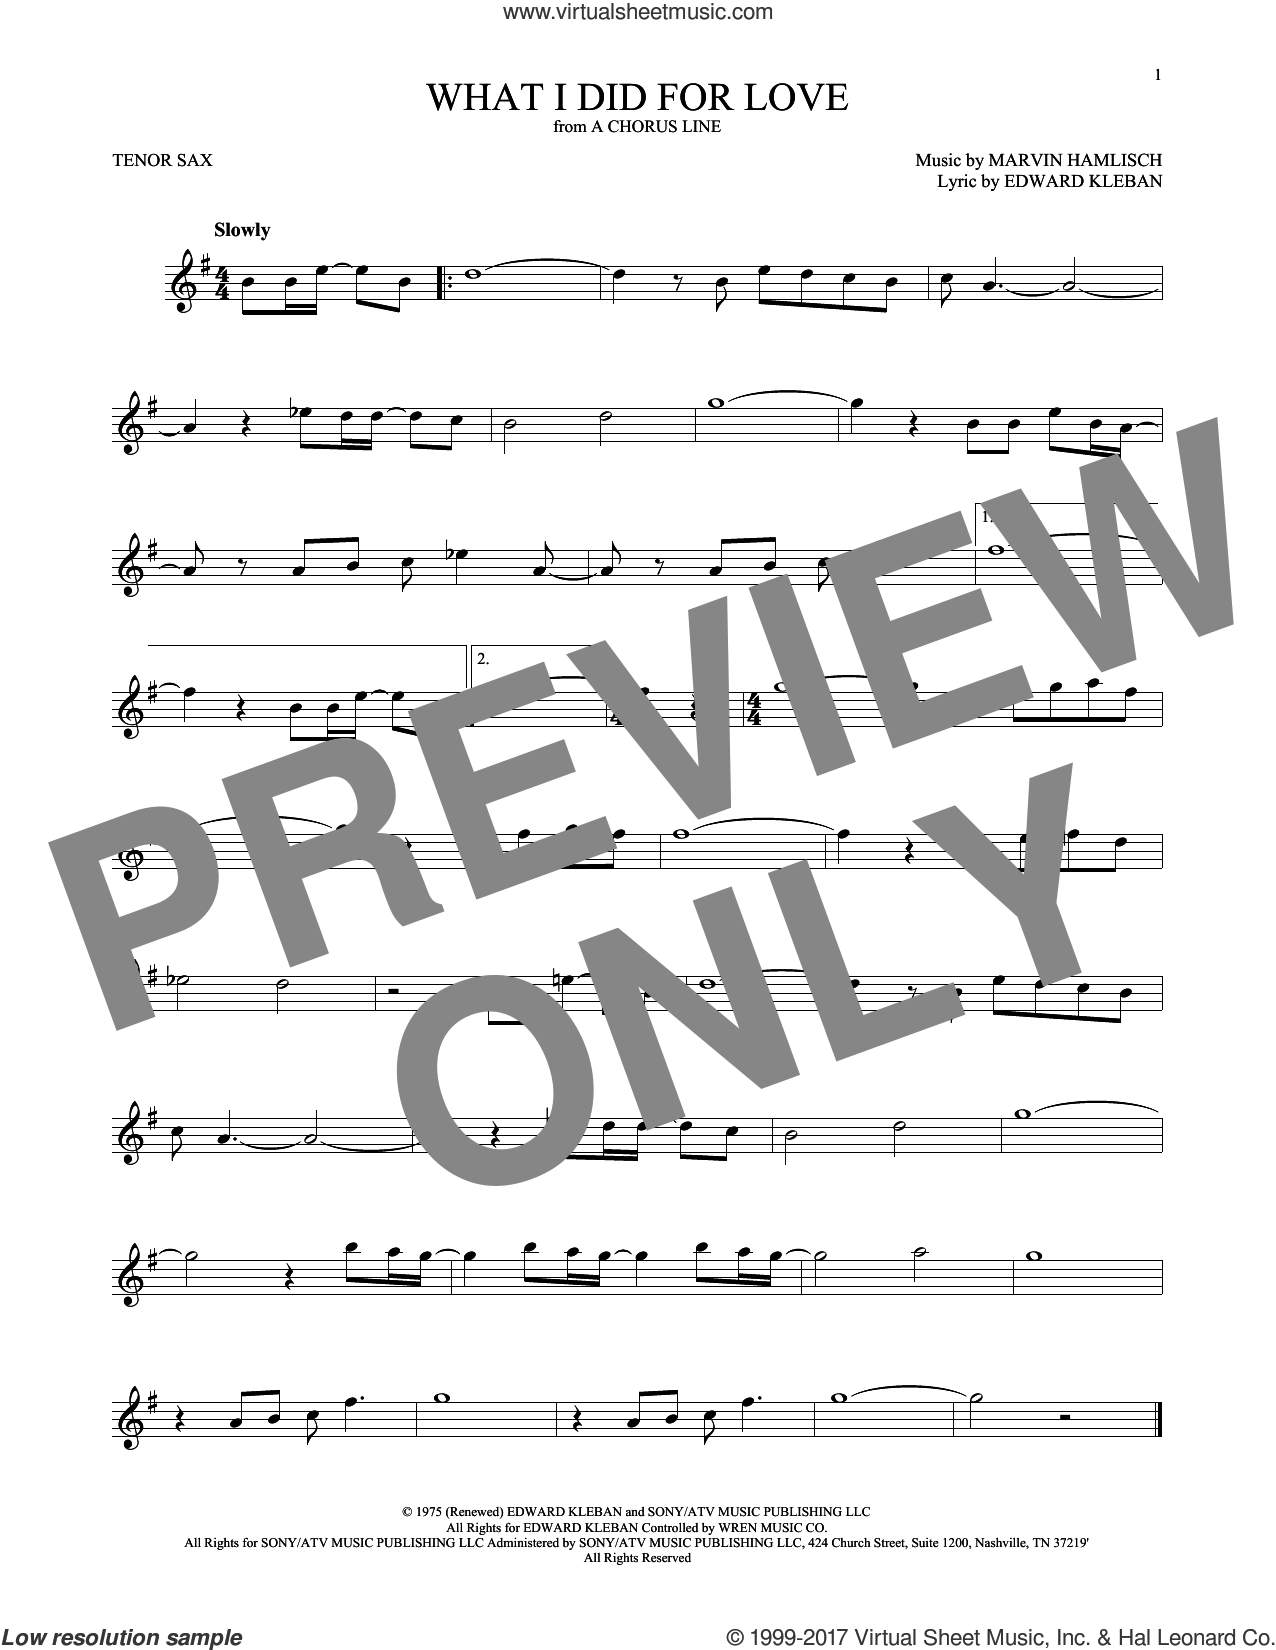 What I Did For Love sheet music for tenor saxophone solo by Marvin Hamlisch and Edward Kleban, intermediate skill level